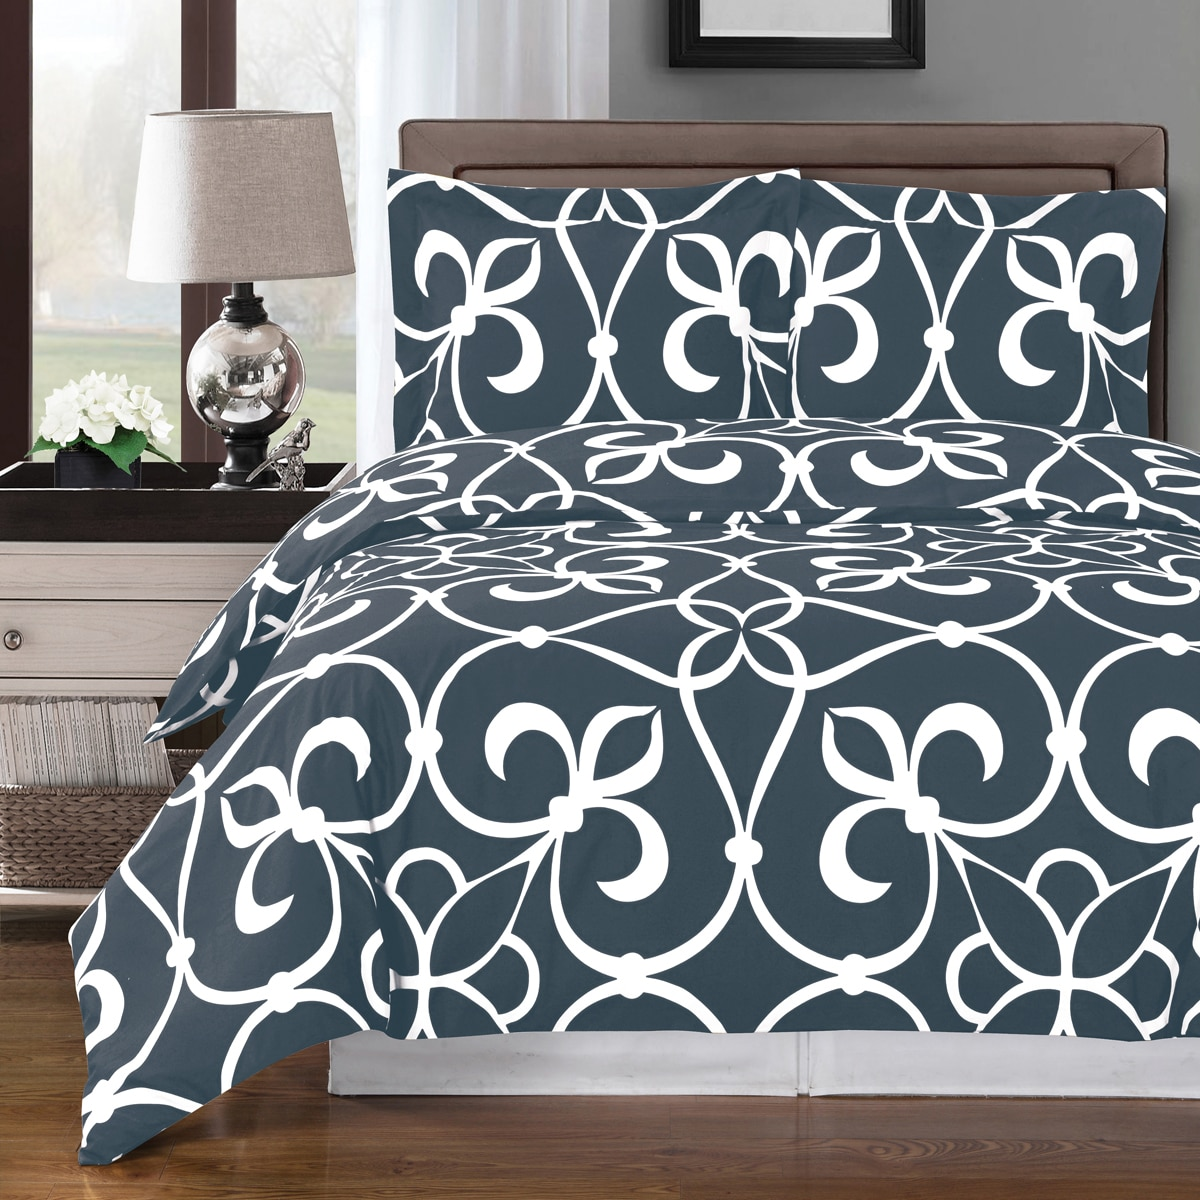 Clearance: Soft 100% Cotton 3 Piece Duvet Cover Set Printed - Full/Queen - Victoria Gray